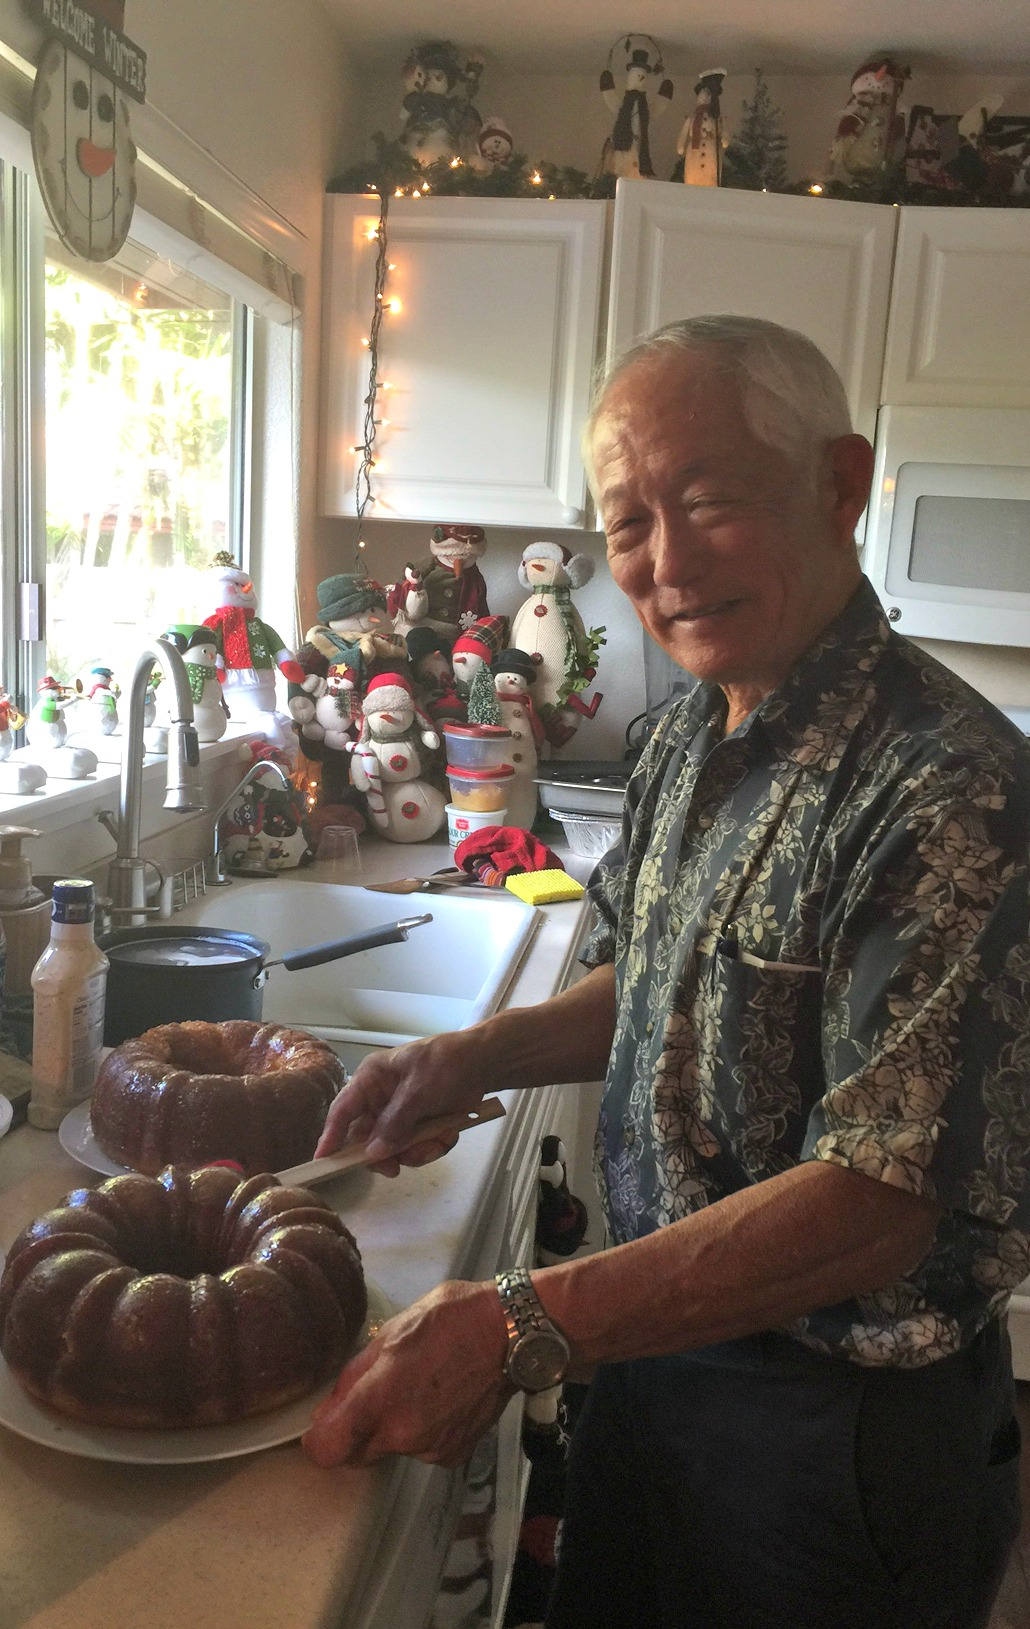 Craig in the kitchen - www.stampedwithaloha.com